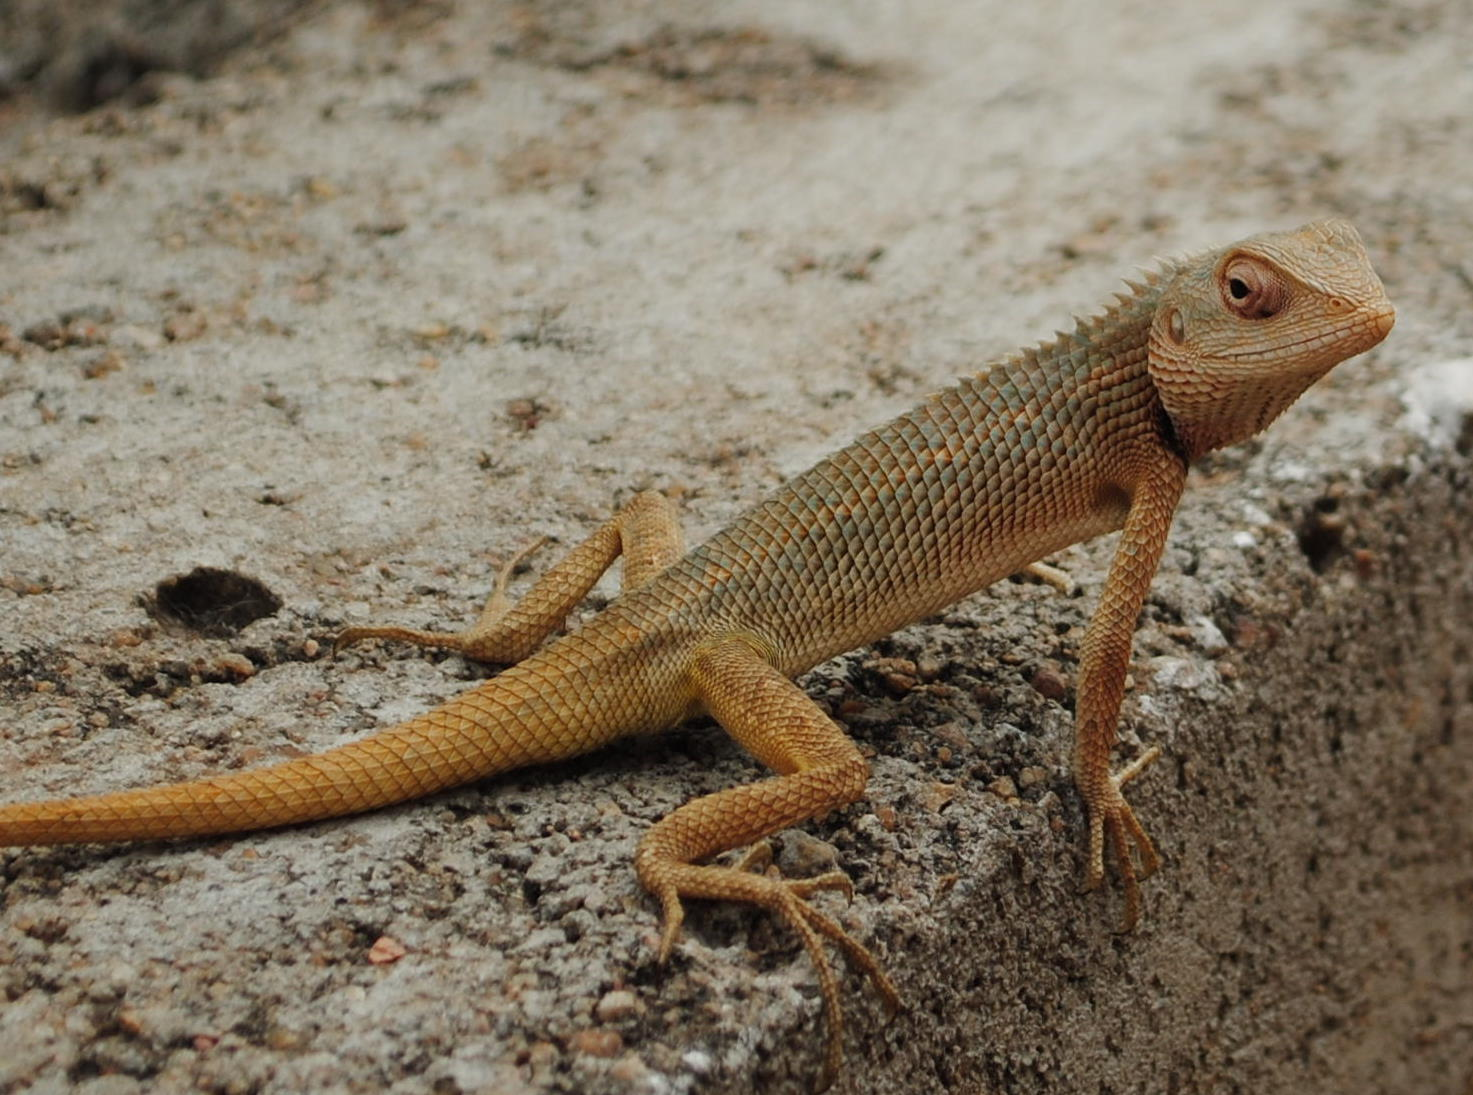 File:GARDEN LIZARD.jpg - Wikimedia Commons